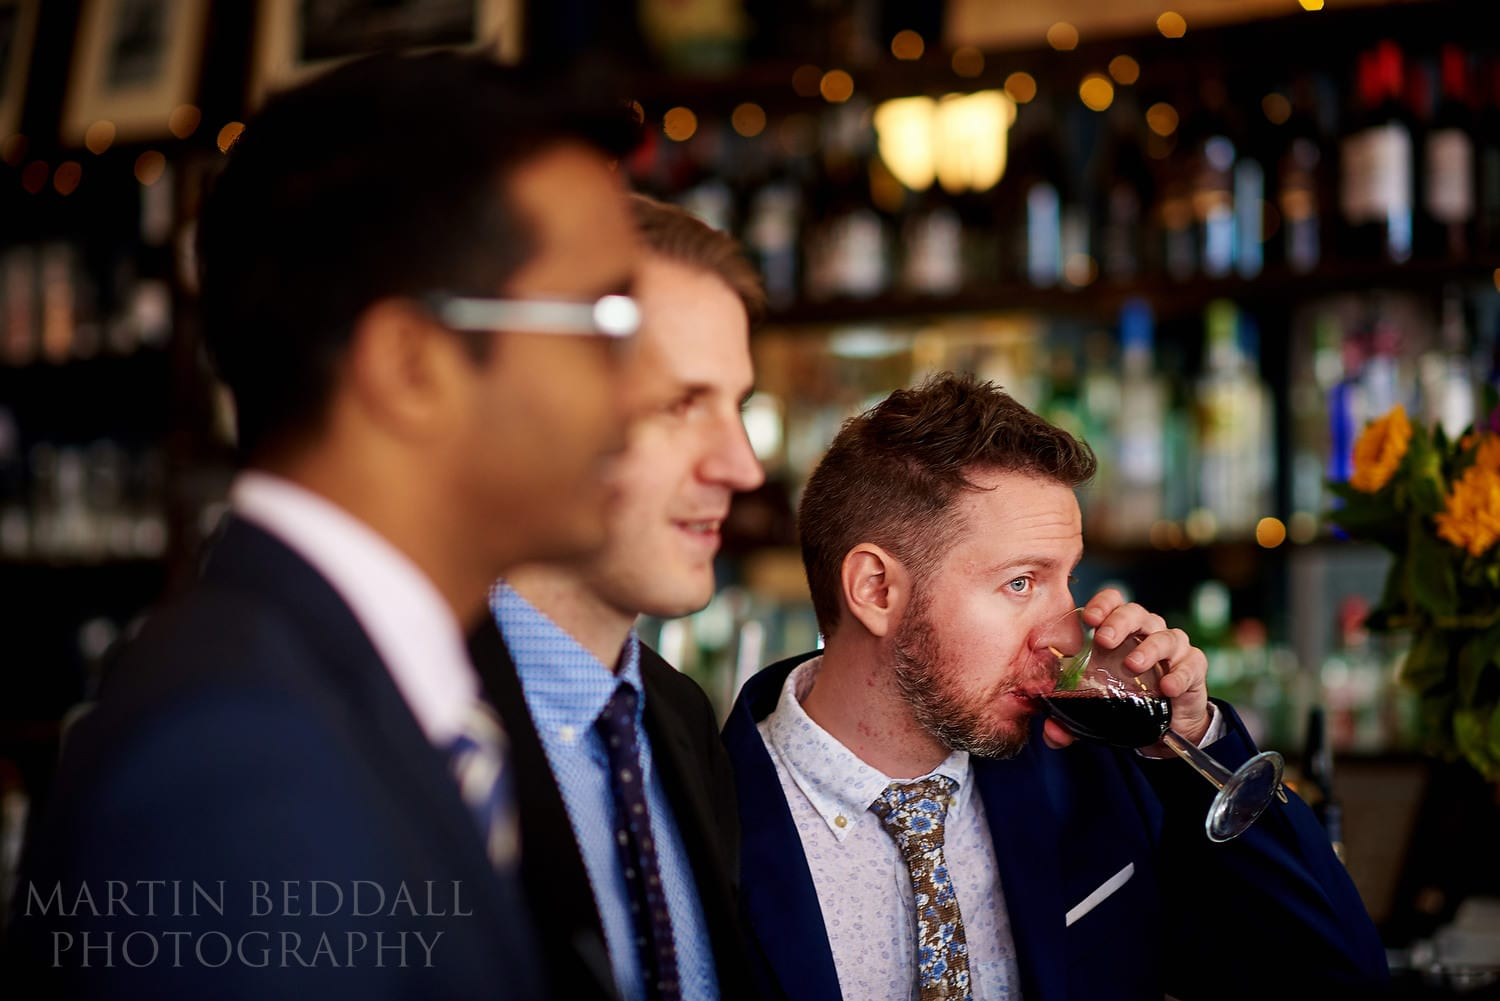 Wedding drinks at The Green pub in Clerkenwell